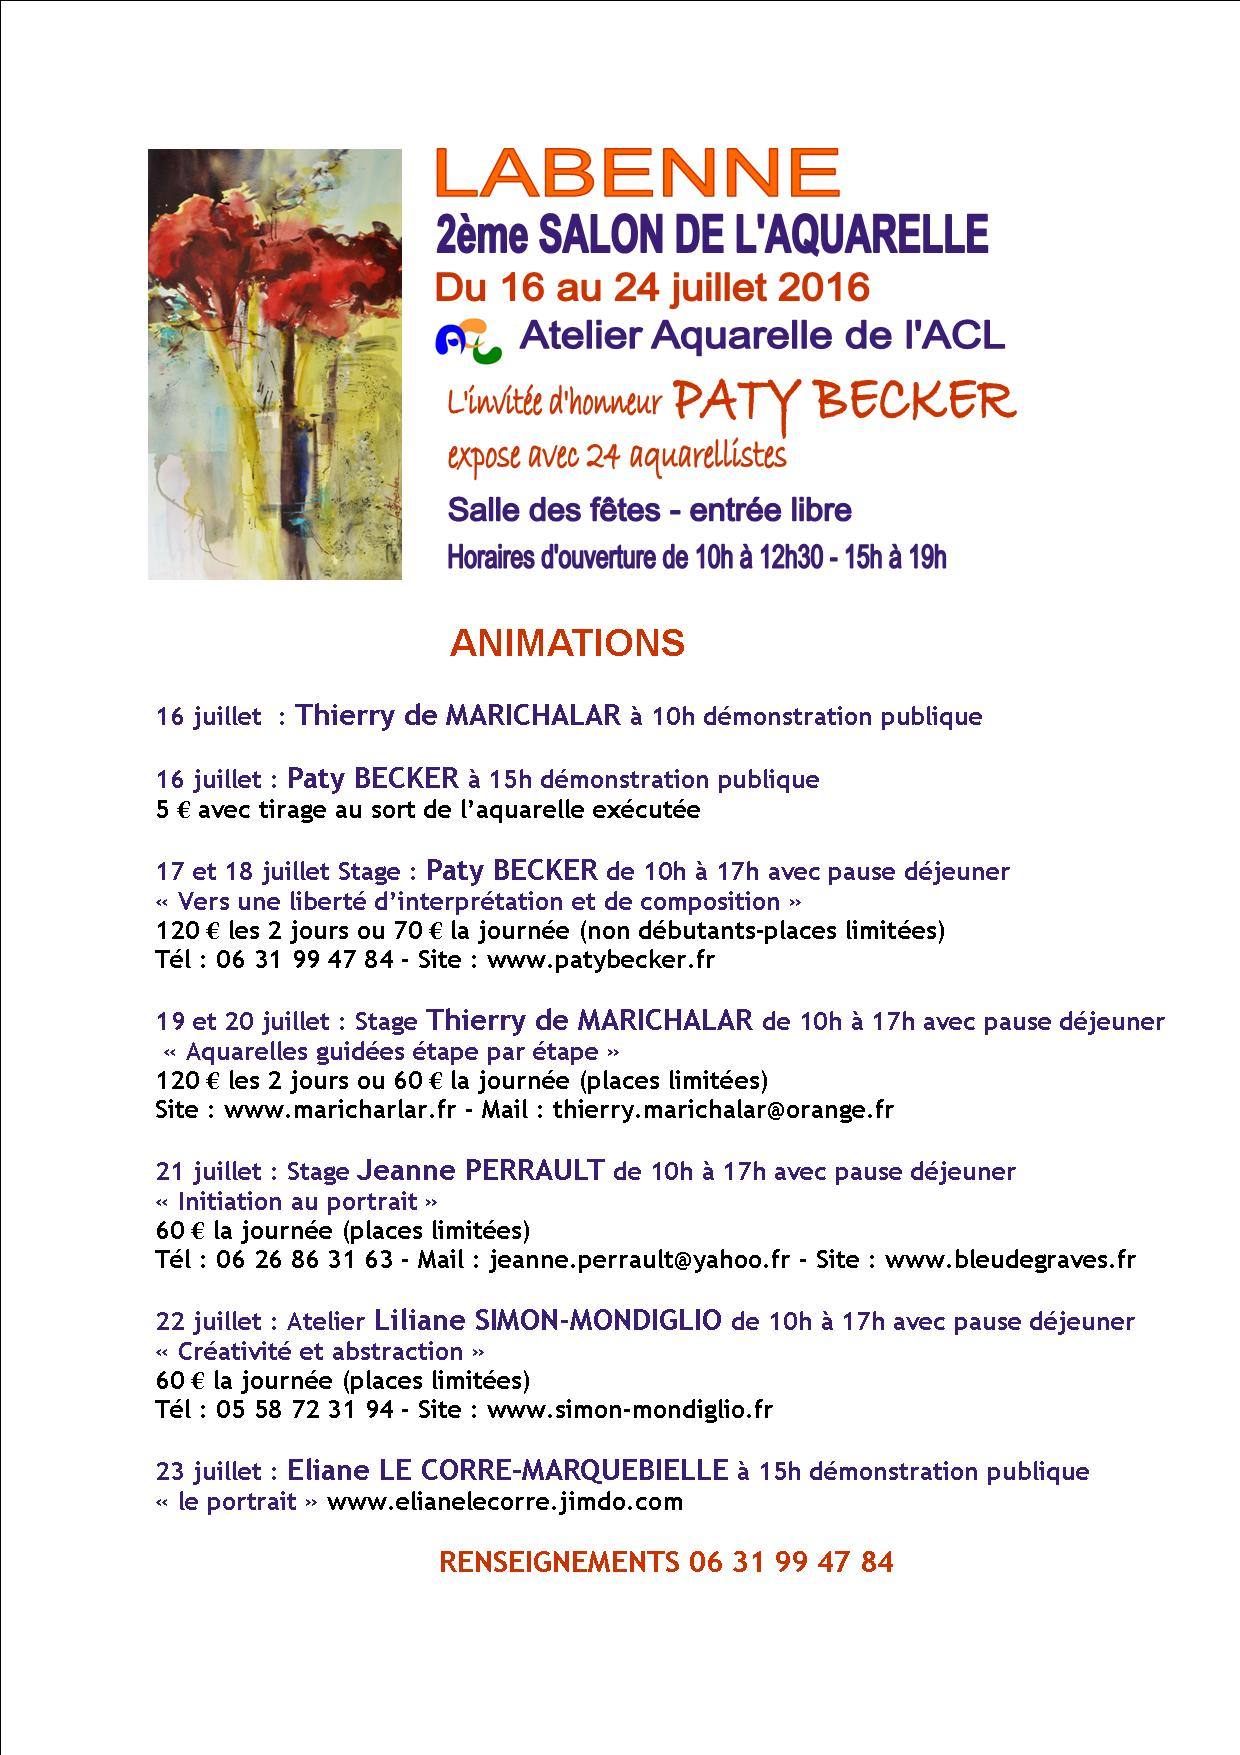 Animations 2ème salon aquarelle Labenne.jpg